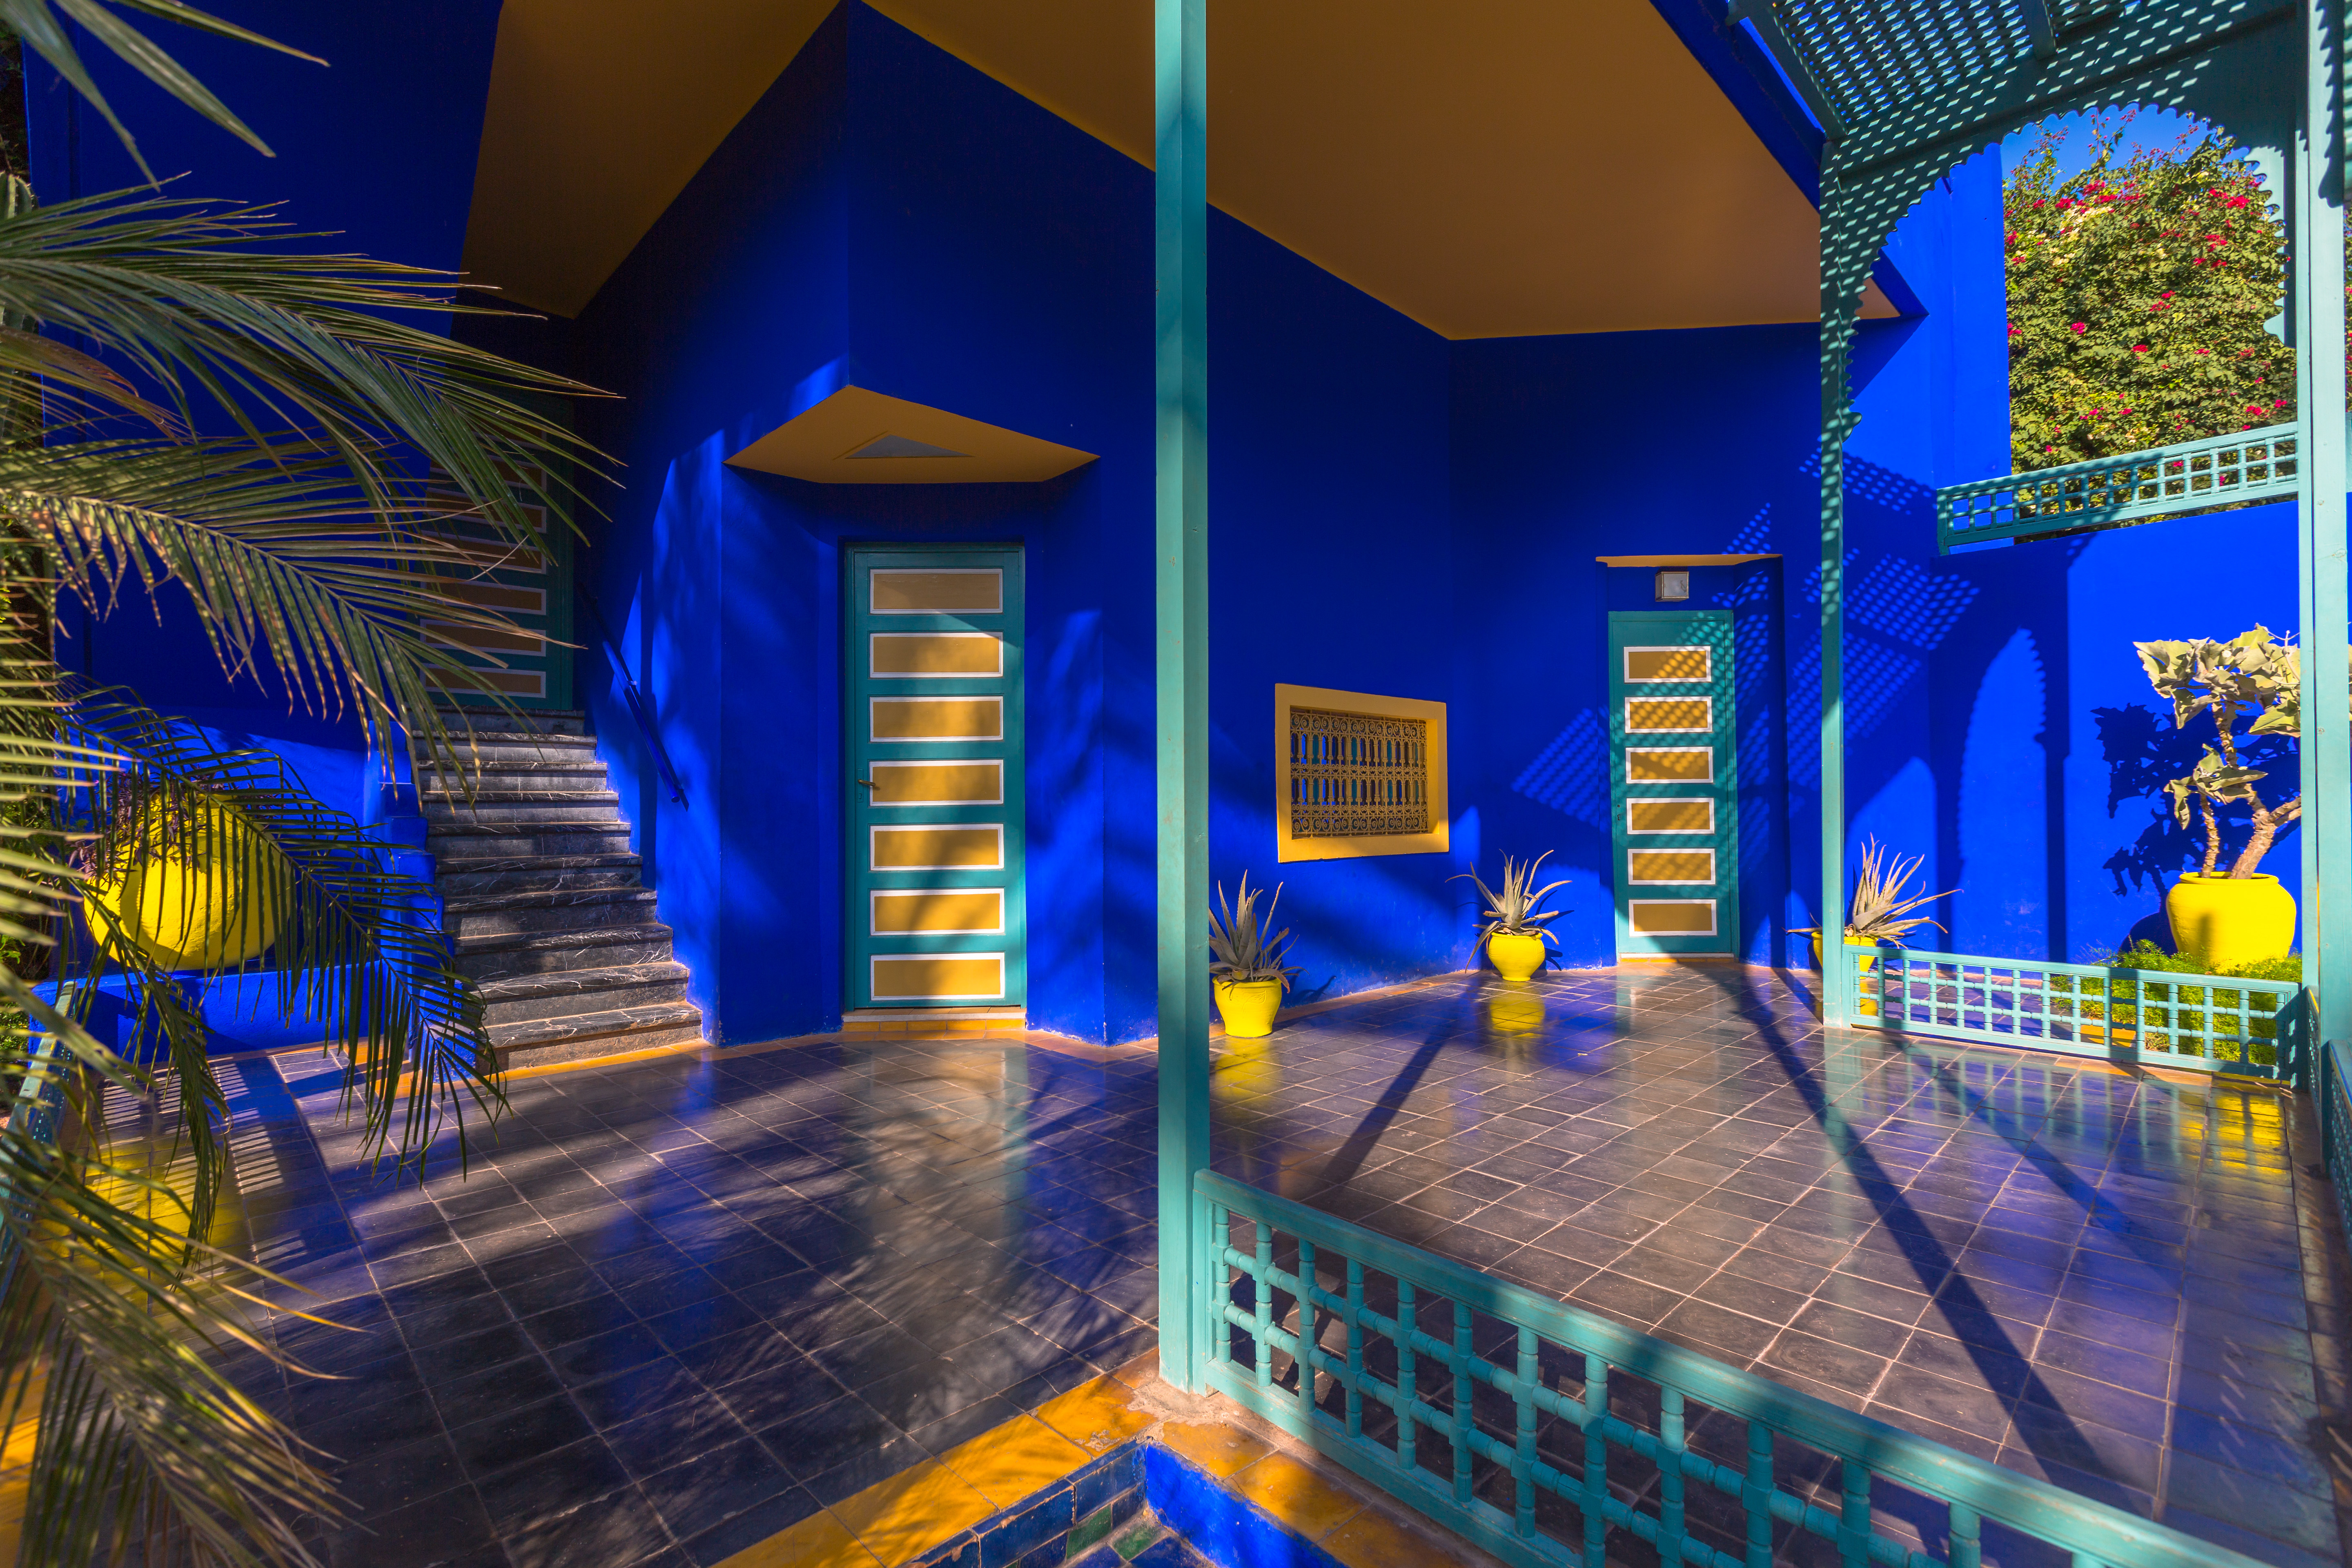 The vibrant blue walls of the Jardin Majorelle in Marrakech (The Greenhouse People/PA)